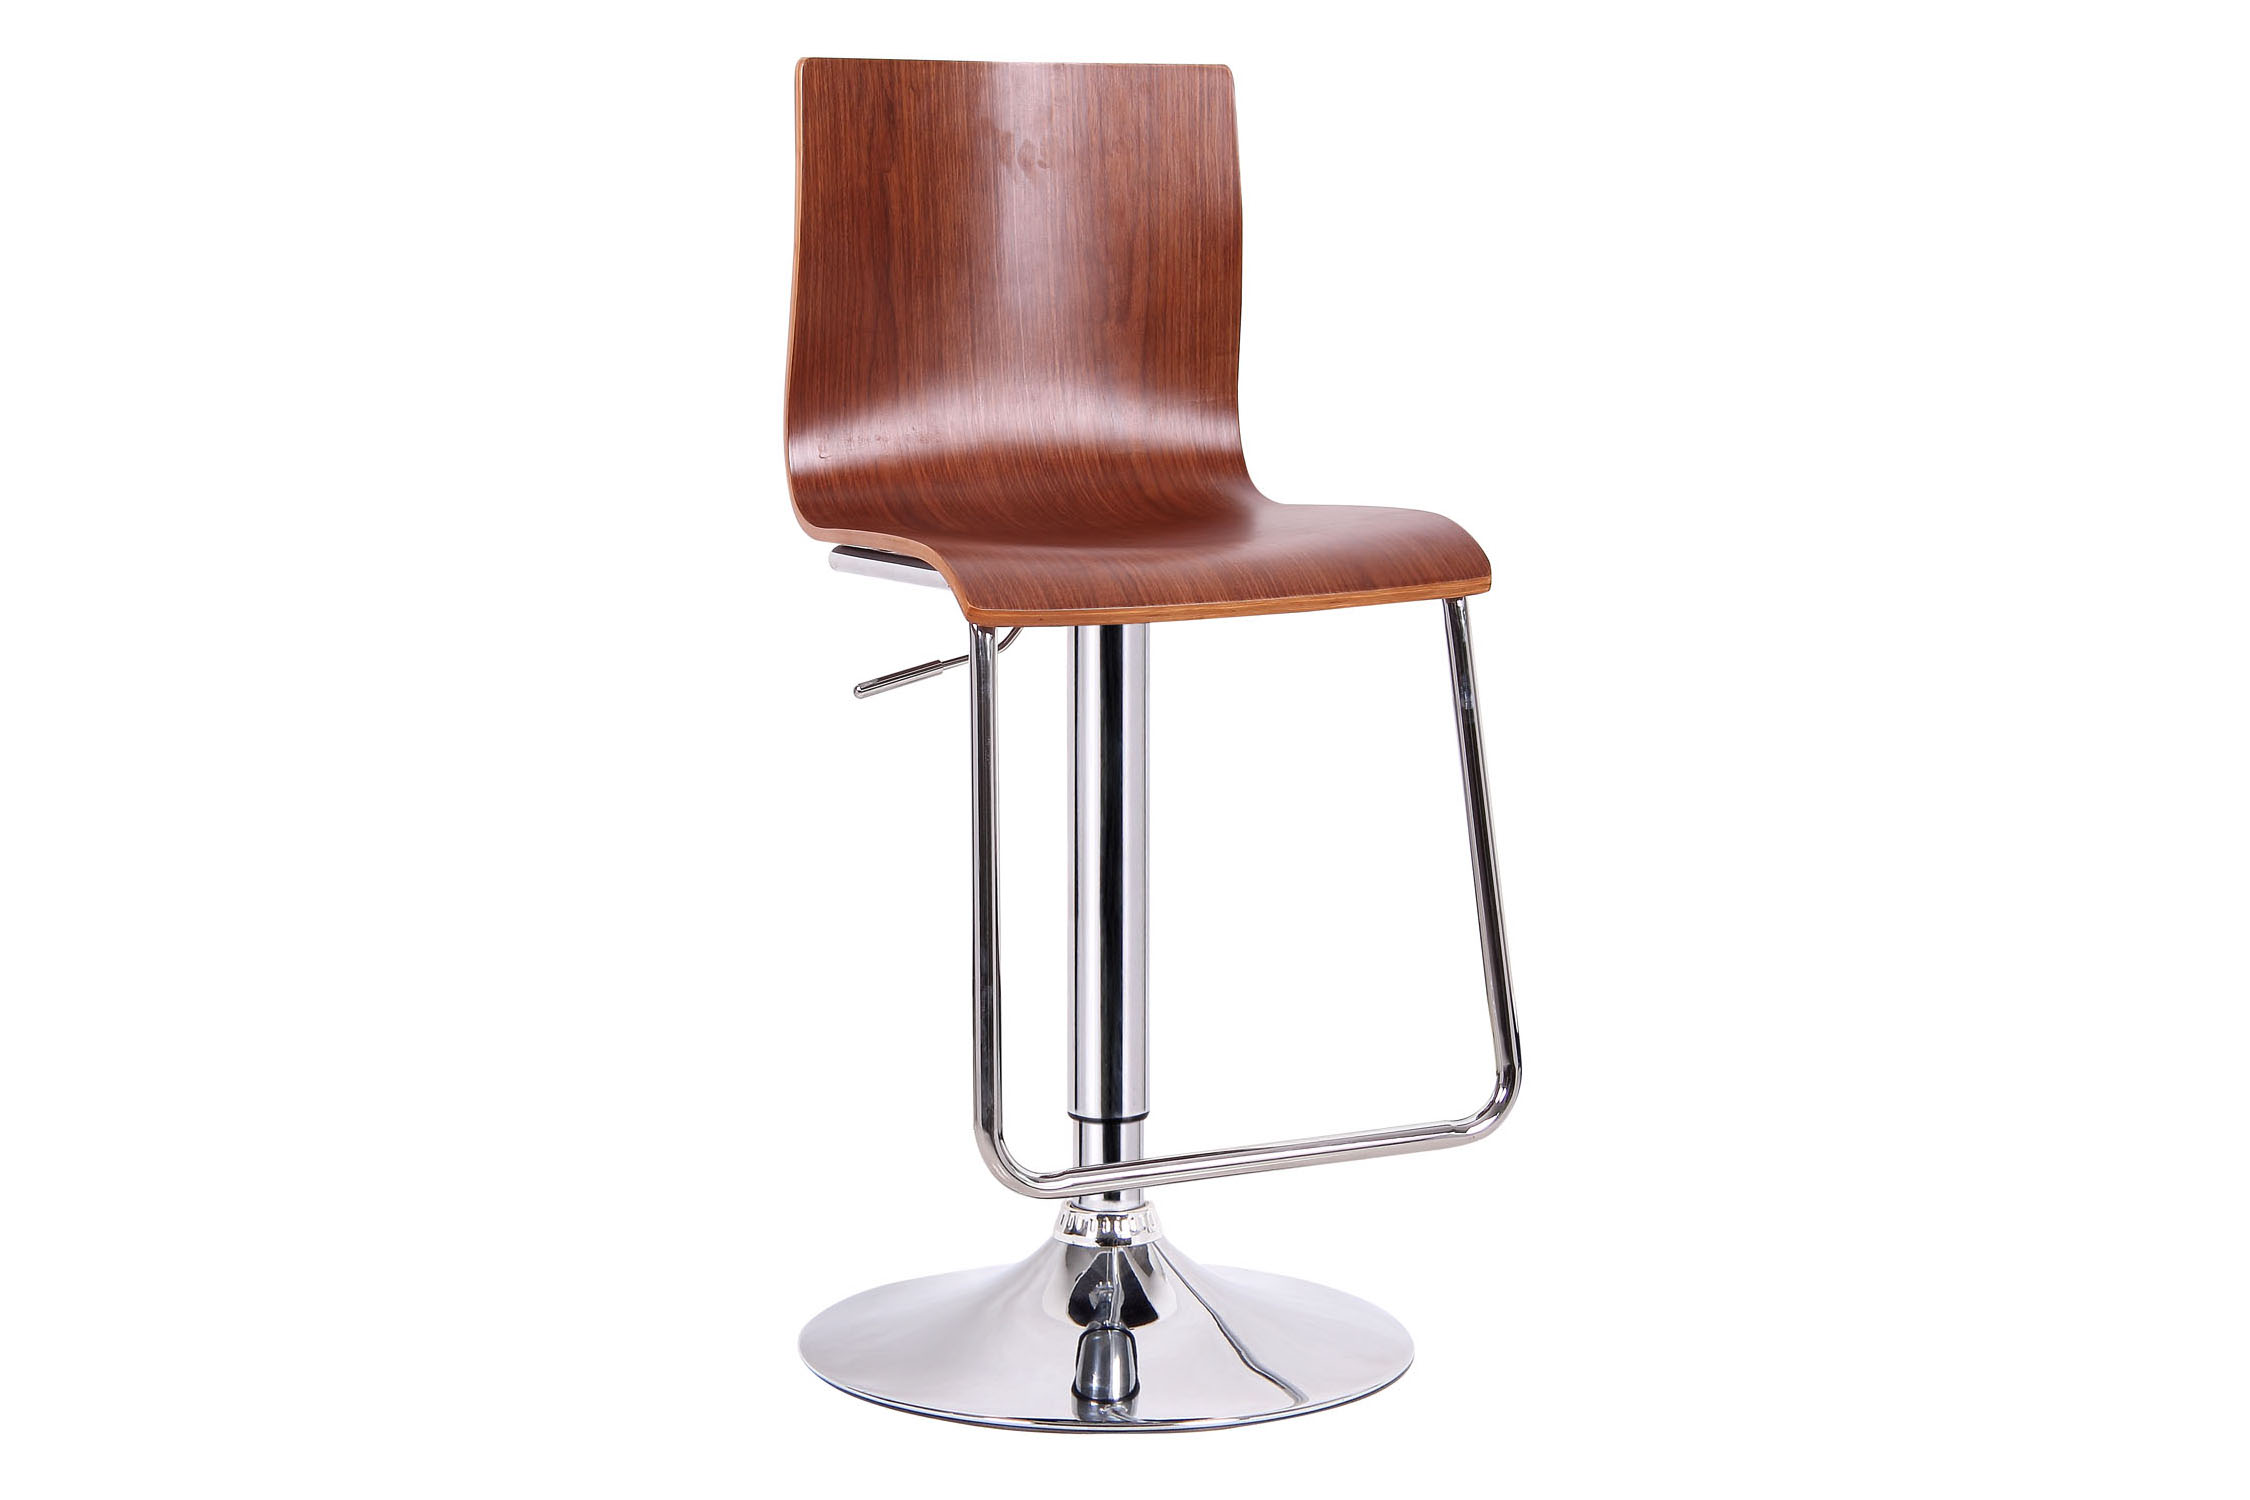 Baxton Studio Lynch Walnut Modern Bar Stool Set of 2 Lynch Walnut Modern Bar Stool ,IESD-2121-walnut-PSTL (2),compare Lynch Walnut Modern Bar Stool ,best price on Lynch Walnut Modern Bar Stool ,discount  Lynch Walnut Modern Bar Stool ,cheap  Lynch Walnut Modern Bar Stool